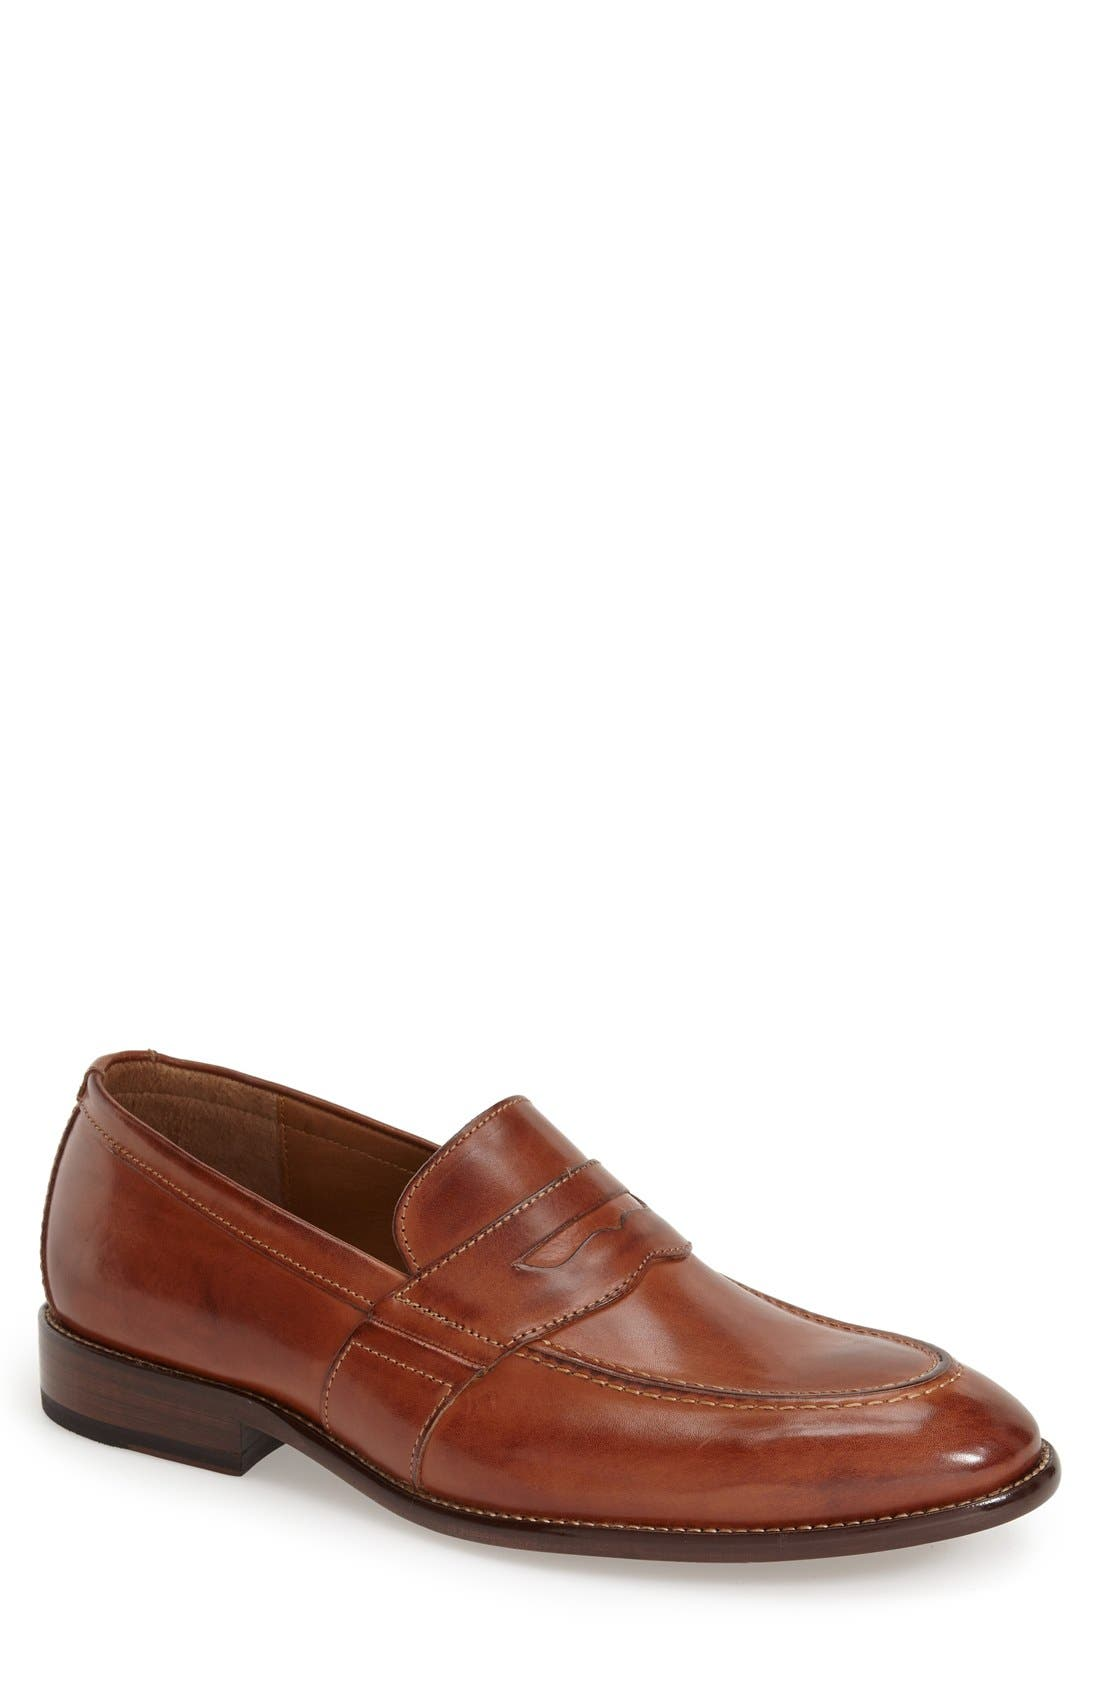 Alternate Image 1 Selected - J & M 1850 'Allred' Penny Loafer (Men) (Nordstrom Exclusive)